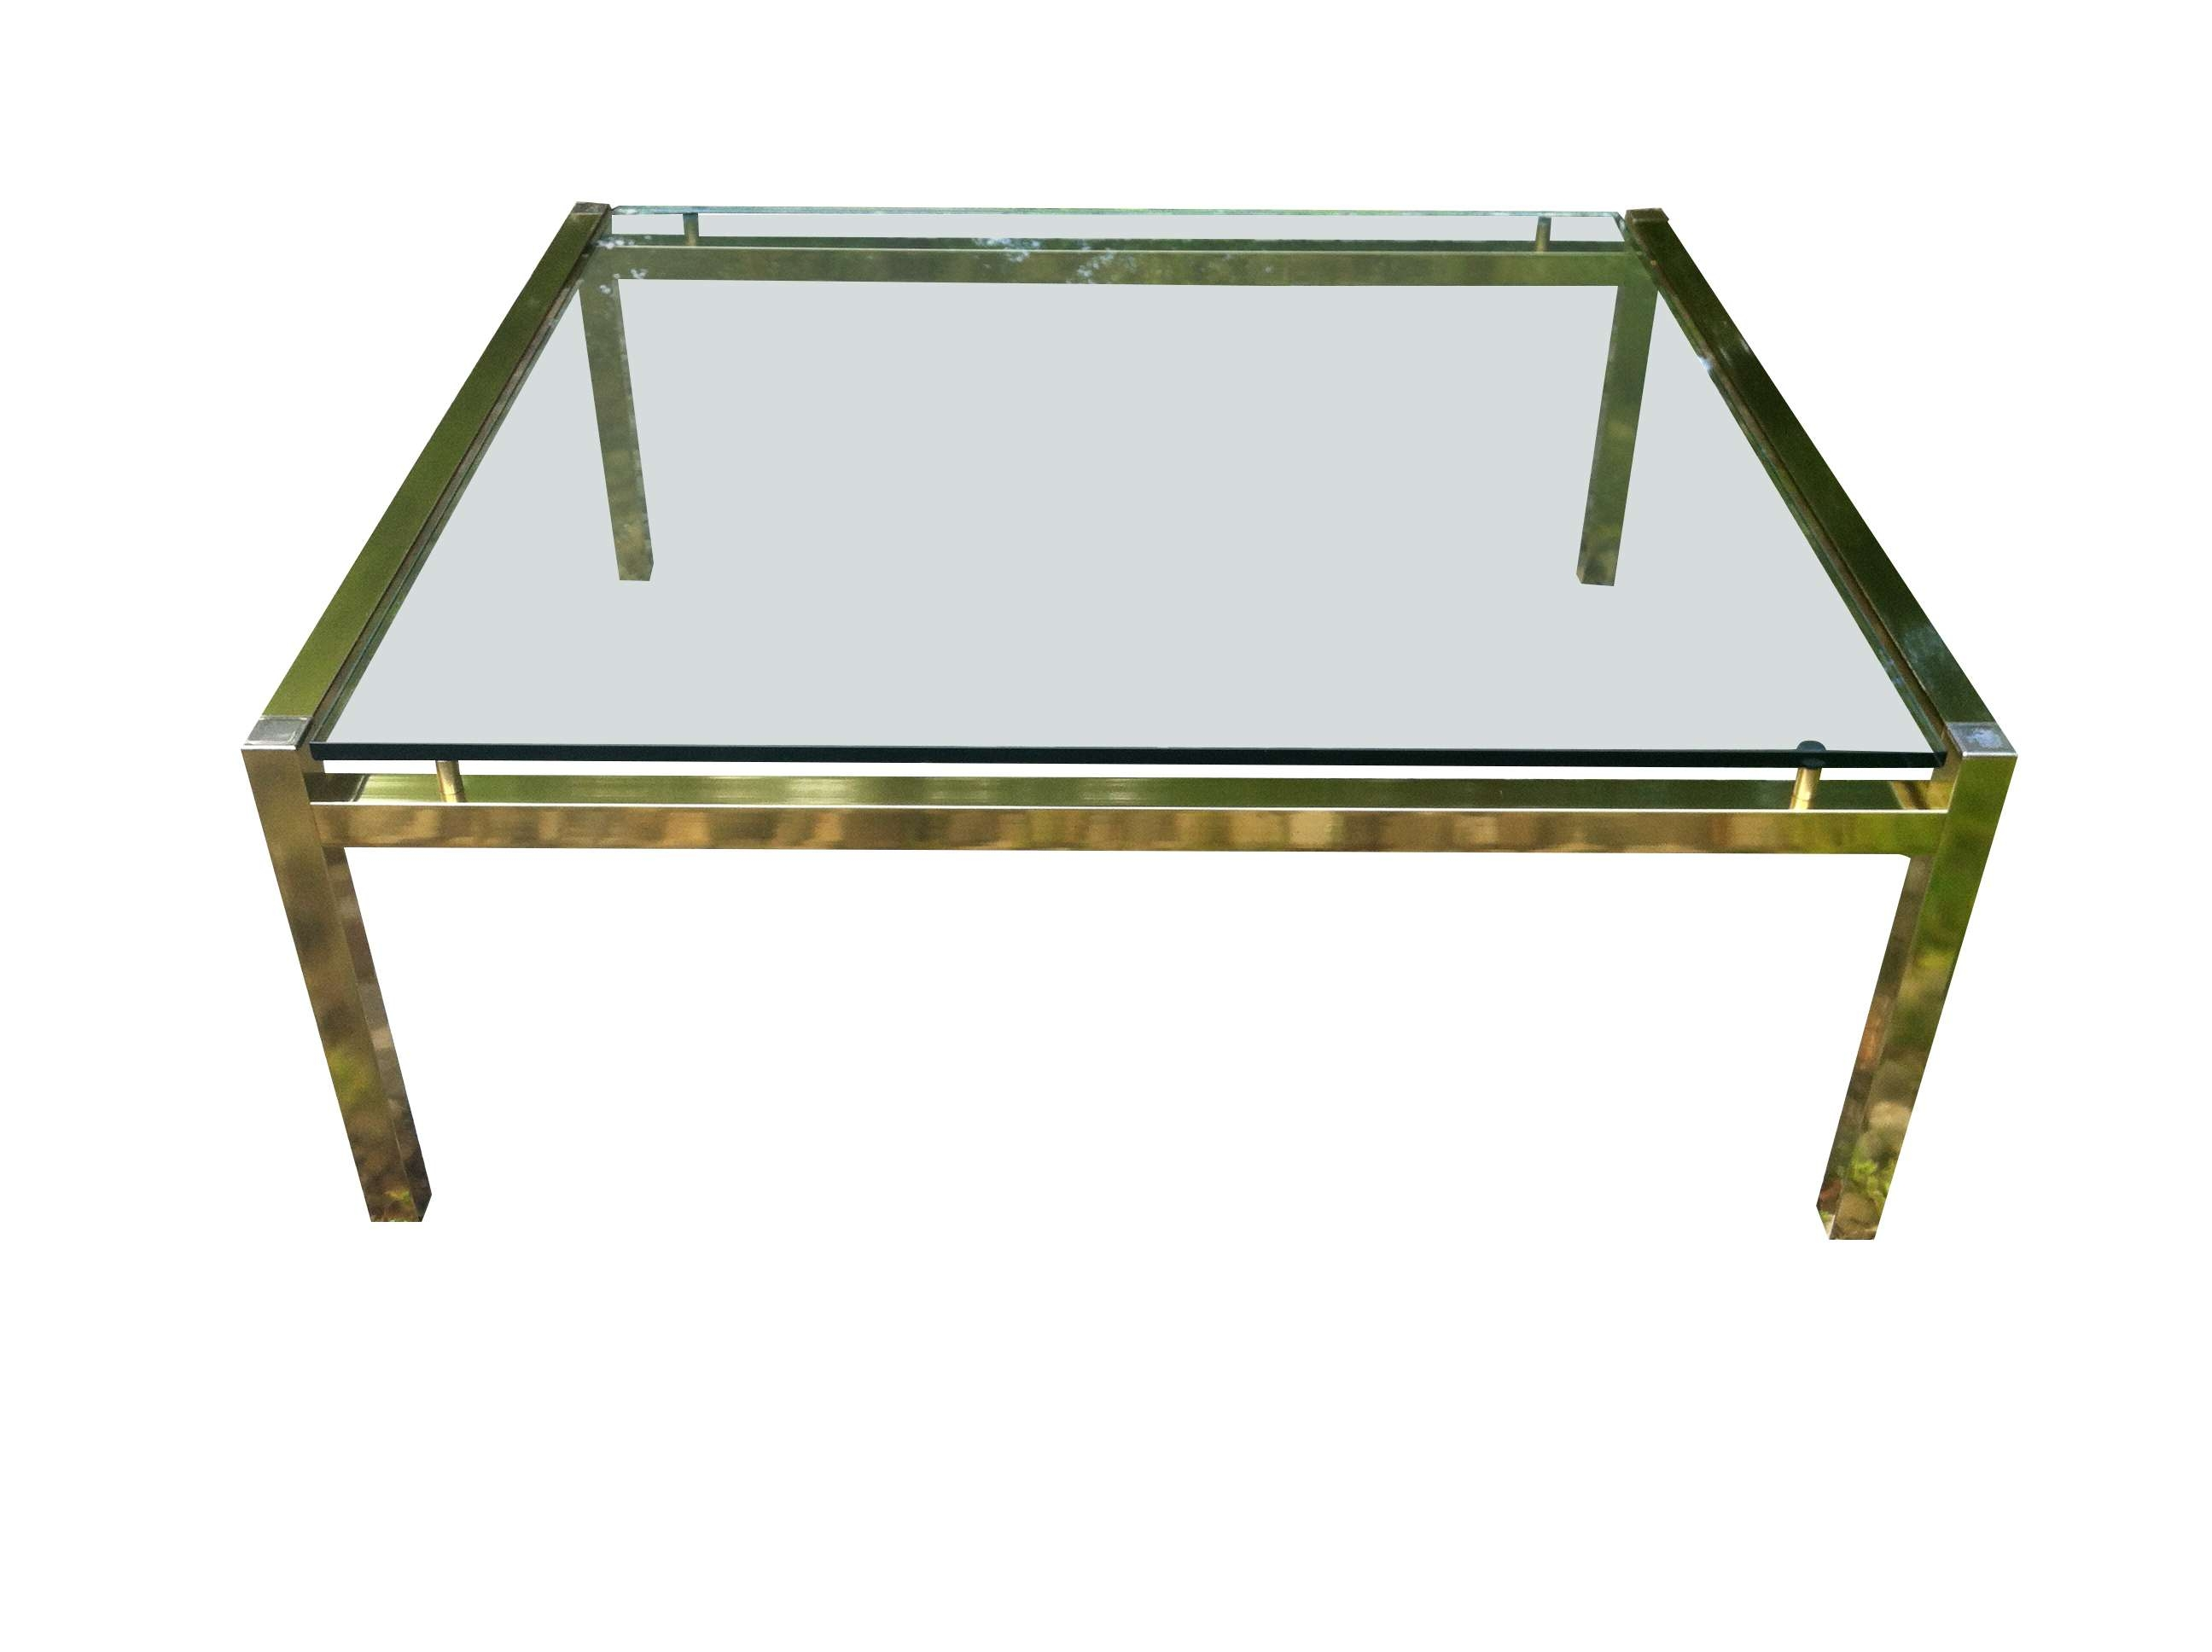 Omero Home Intended For Most Popular Floating Glass Coffee Tables (Gallery 2 of 20)